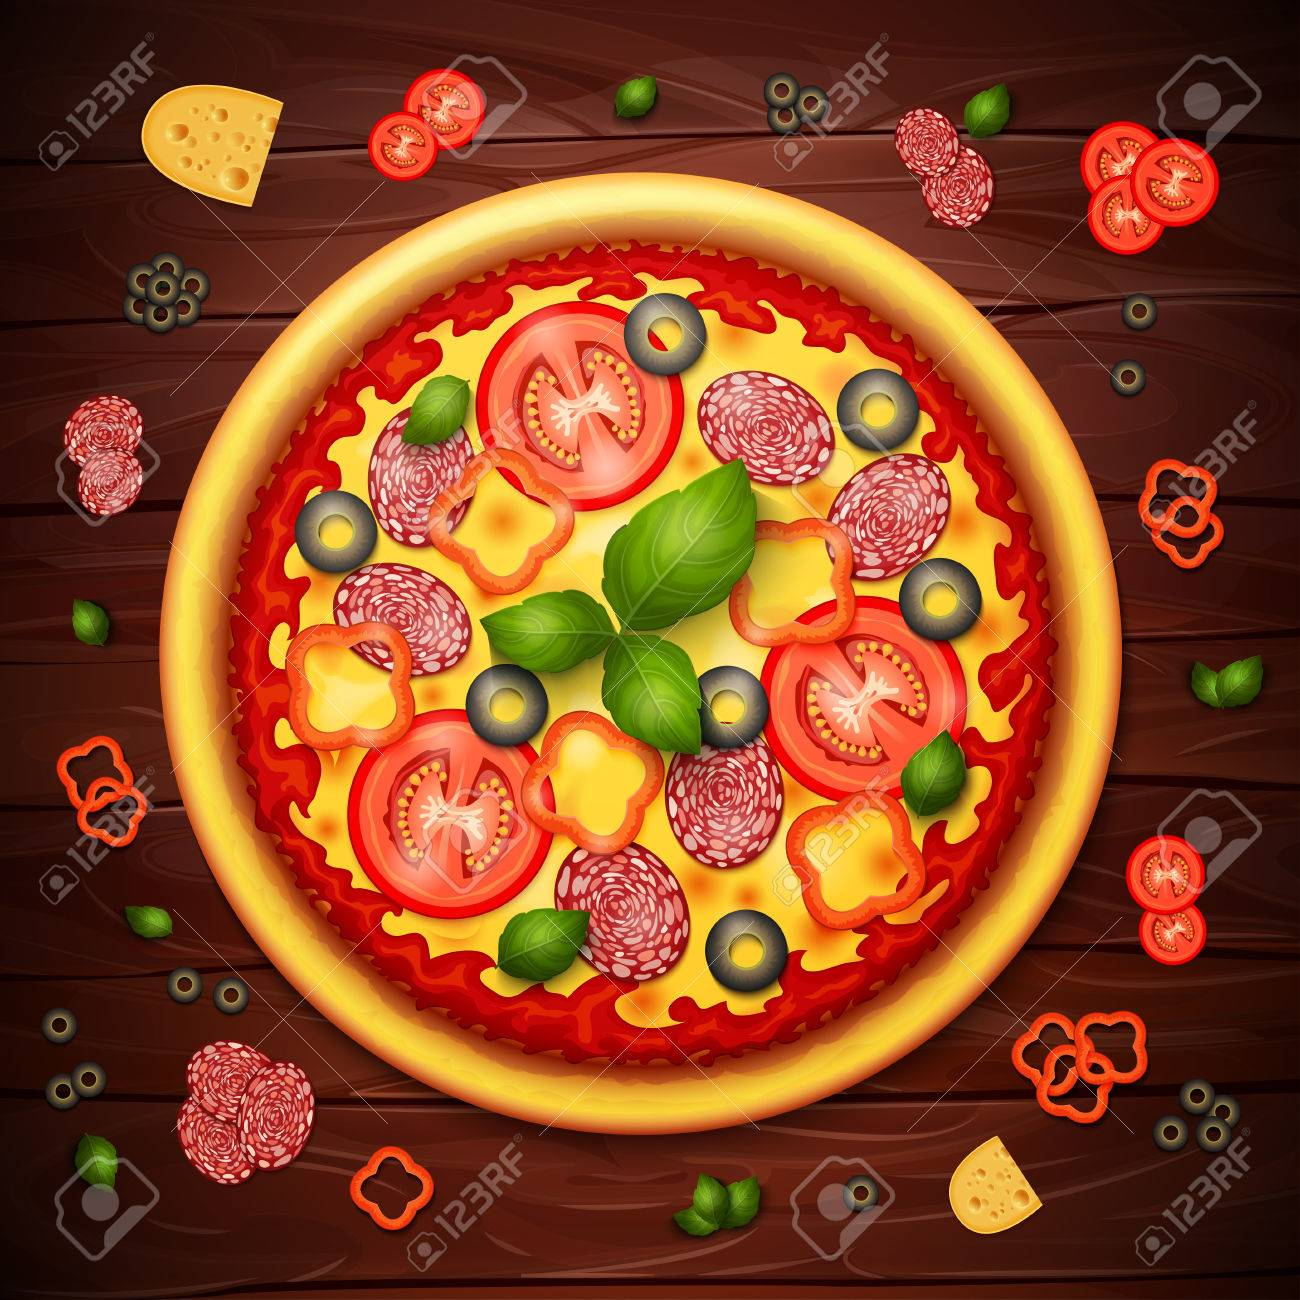 Realistic Vector Pizza Recipe Or Menu Wood Background With Tomatoes And Pepperoni On Wooden